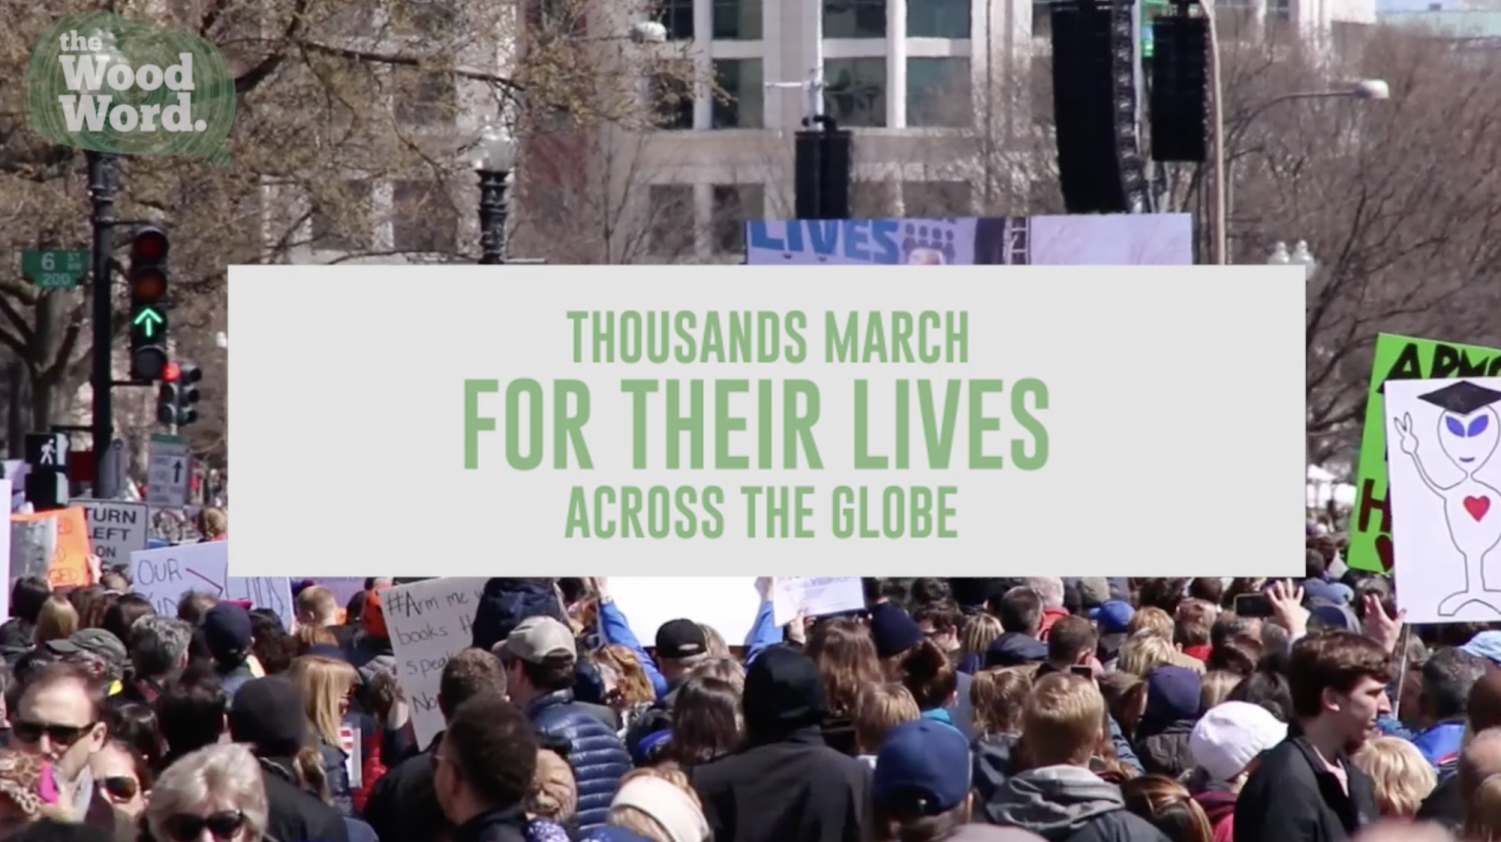 Thousands march for their lives